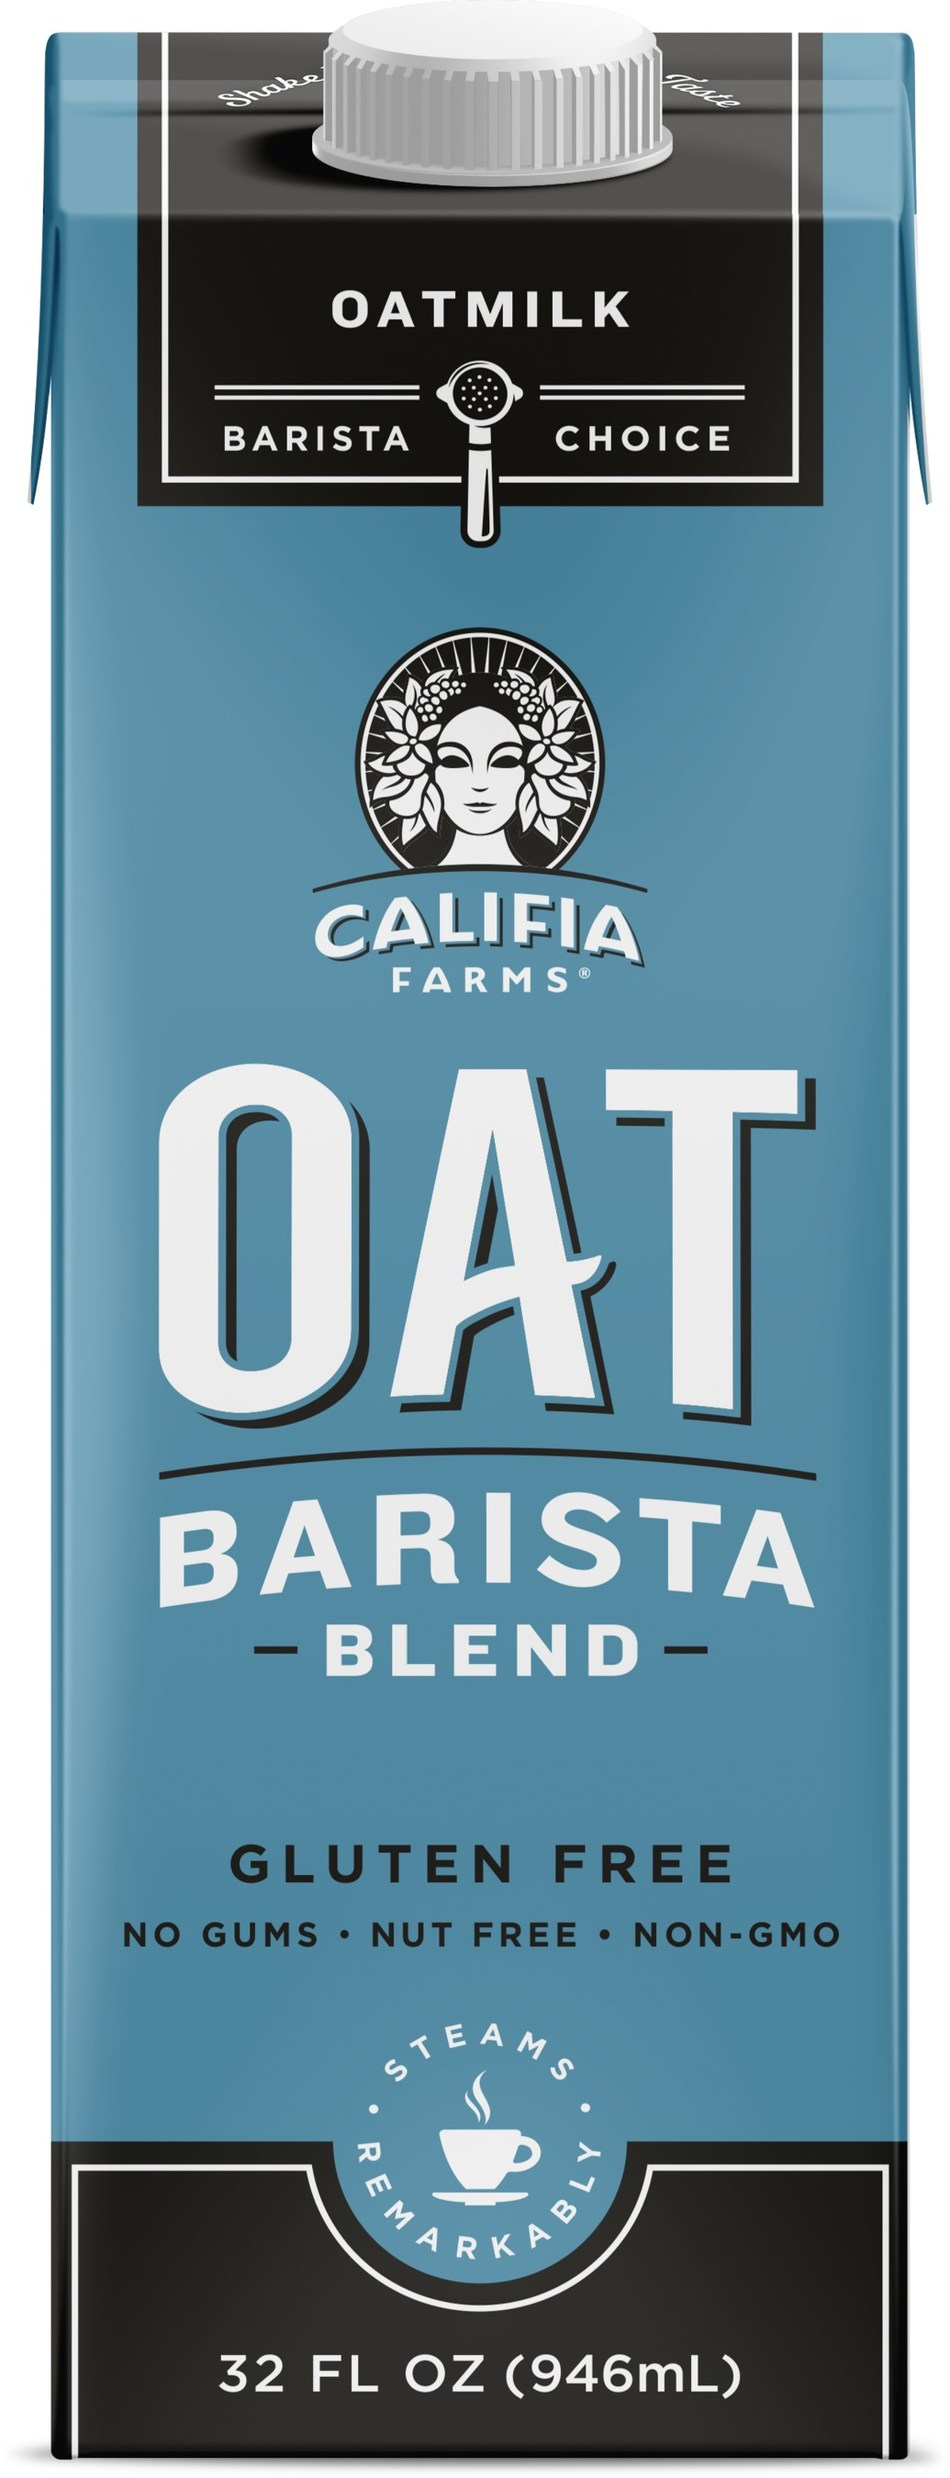 Califia Farms announces new Oat Barista Blend made with North American whole grain, gluten free oats; launching February 2019.